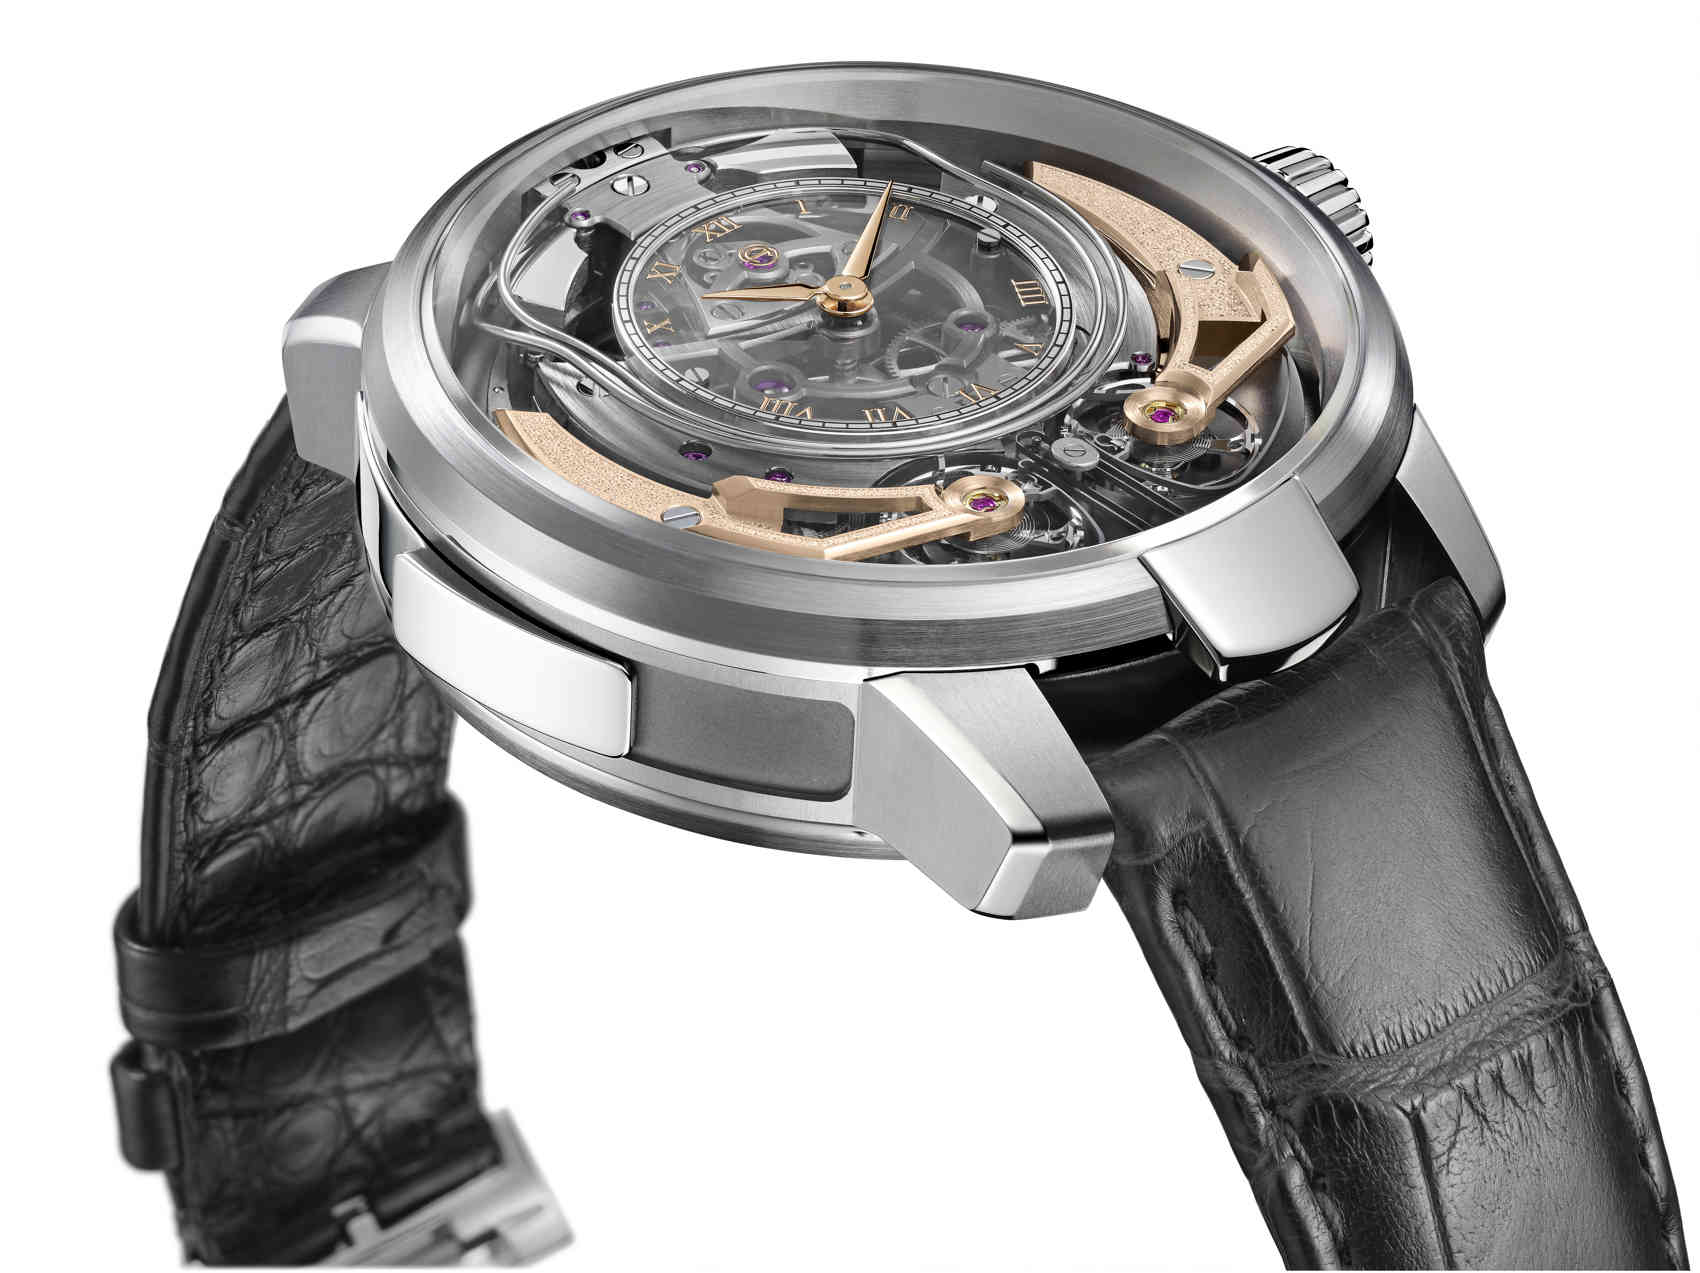 Armin Strom Minute Repeater Resonance lado